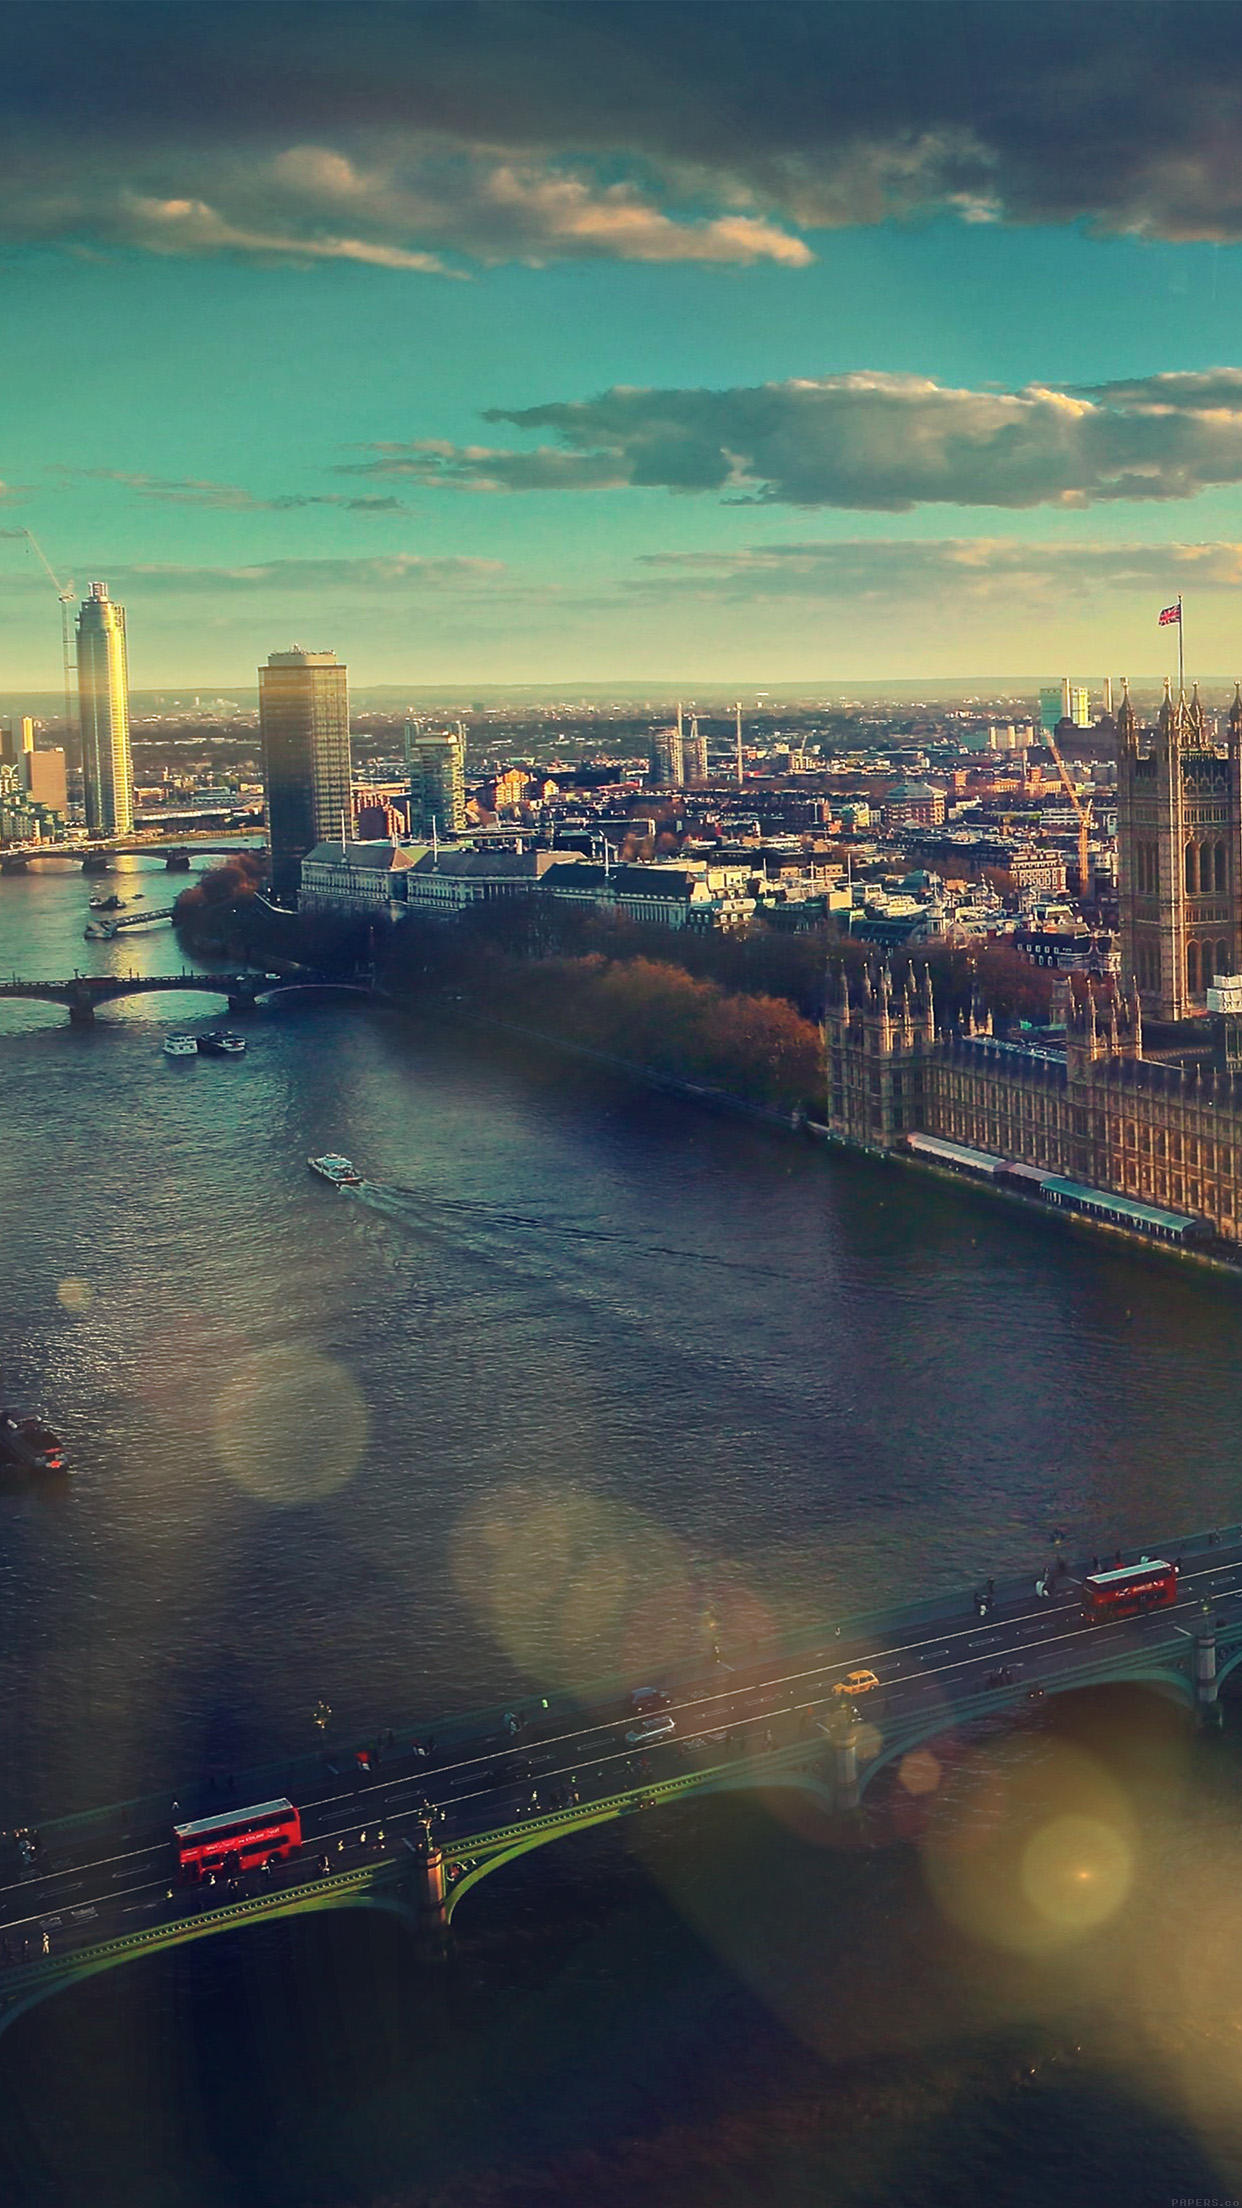 London The City 3Wallpapers iPhone Parallax1 Les 3Wallpapers iPhone du jour (21/08/2015)